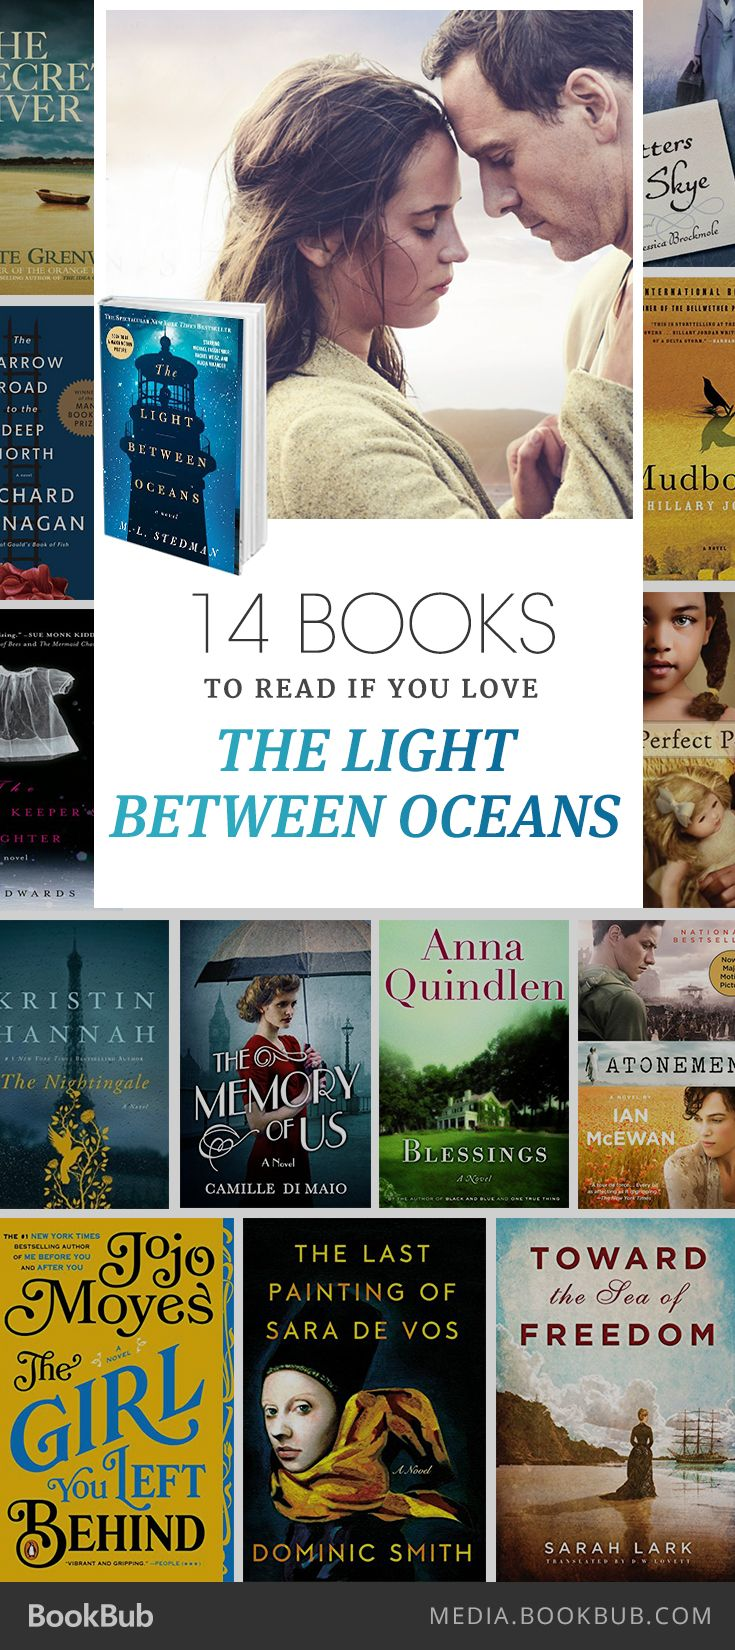 14 books for women, including Blessings by Anna Quindlen.